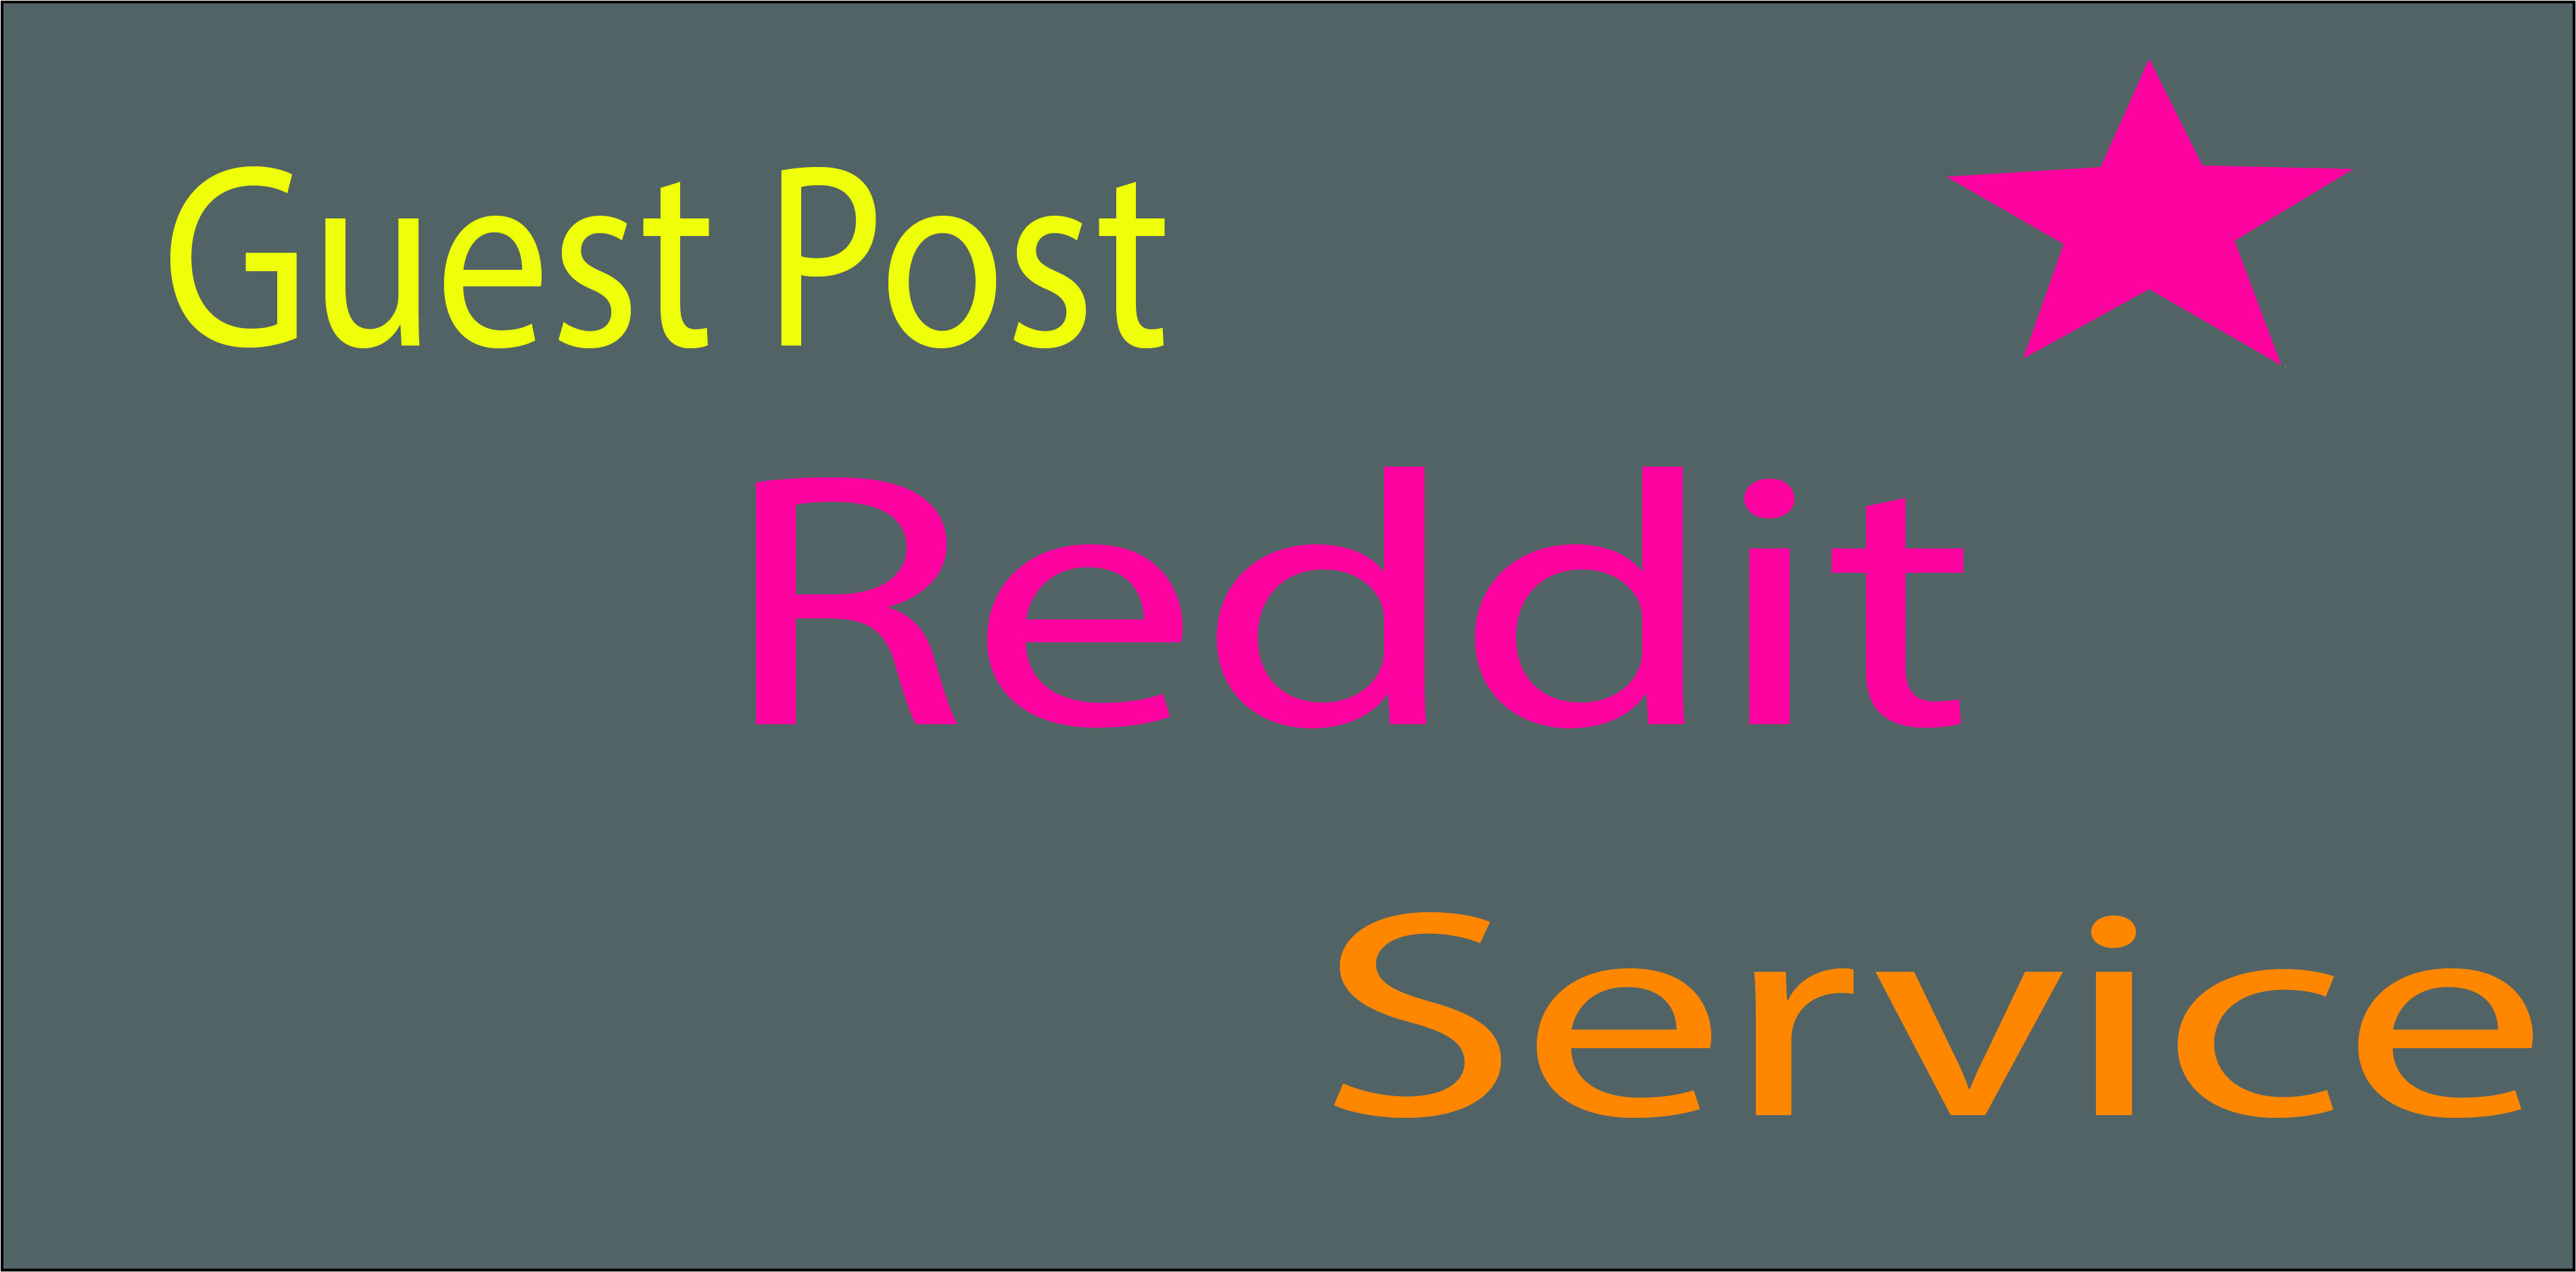 I will create guest post backlinks on Reddit com